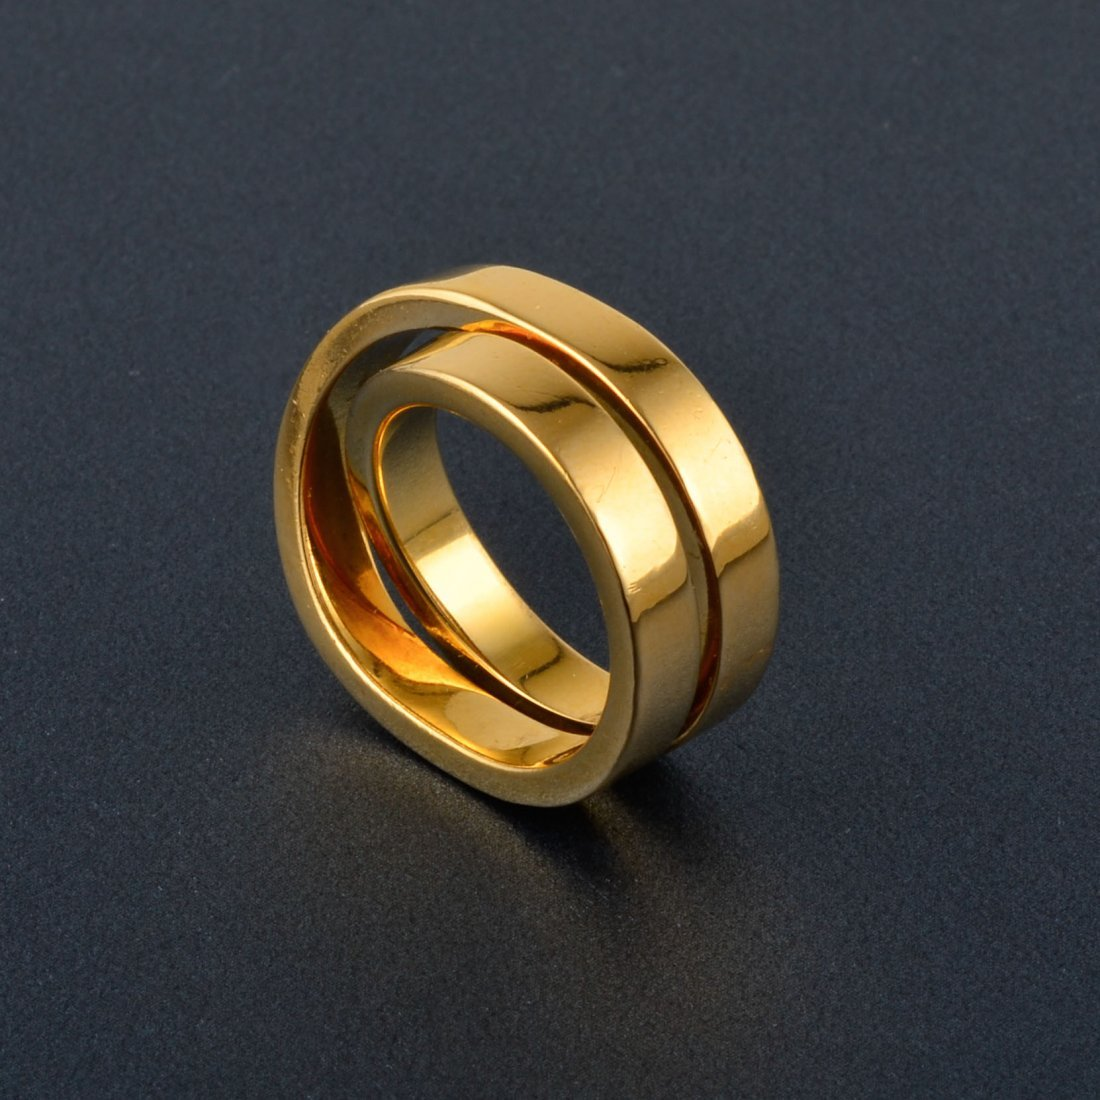 6: Cartier Crossover Gold Ring